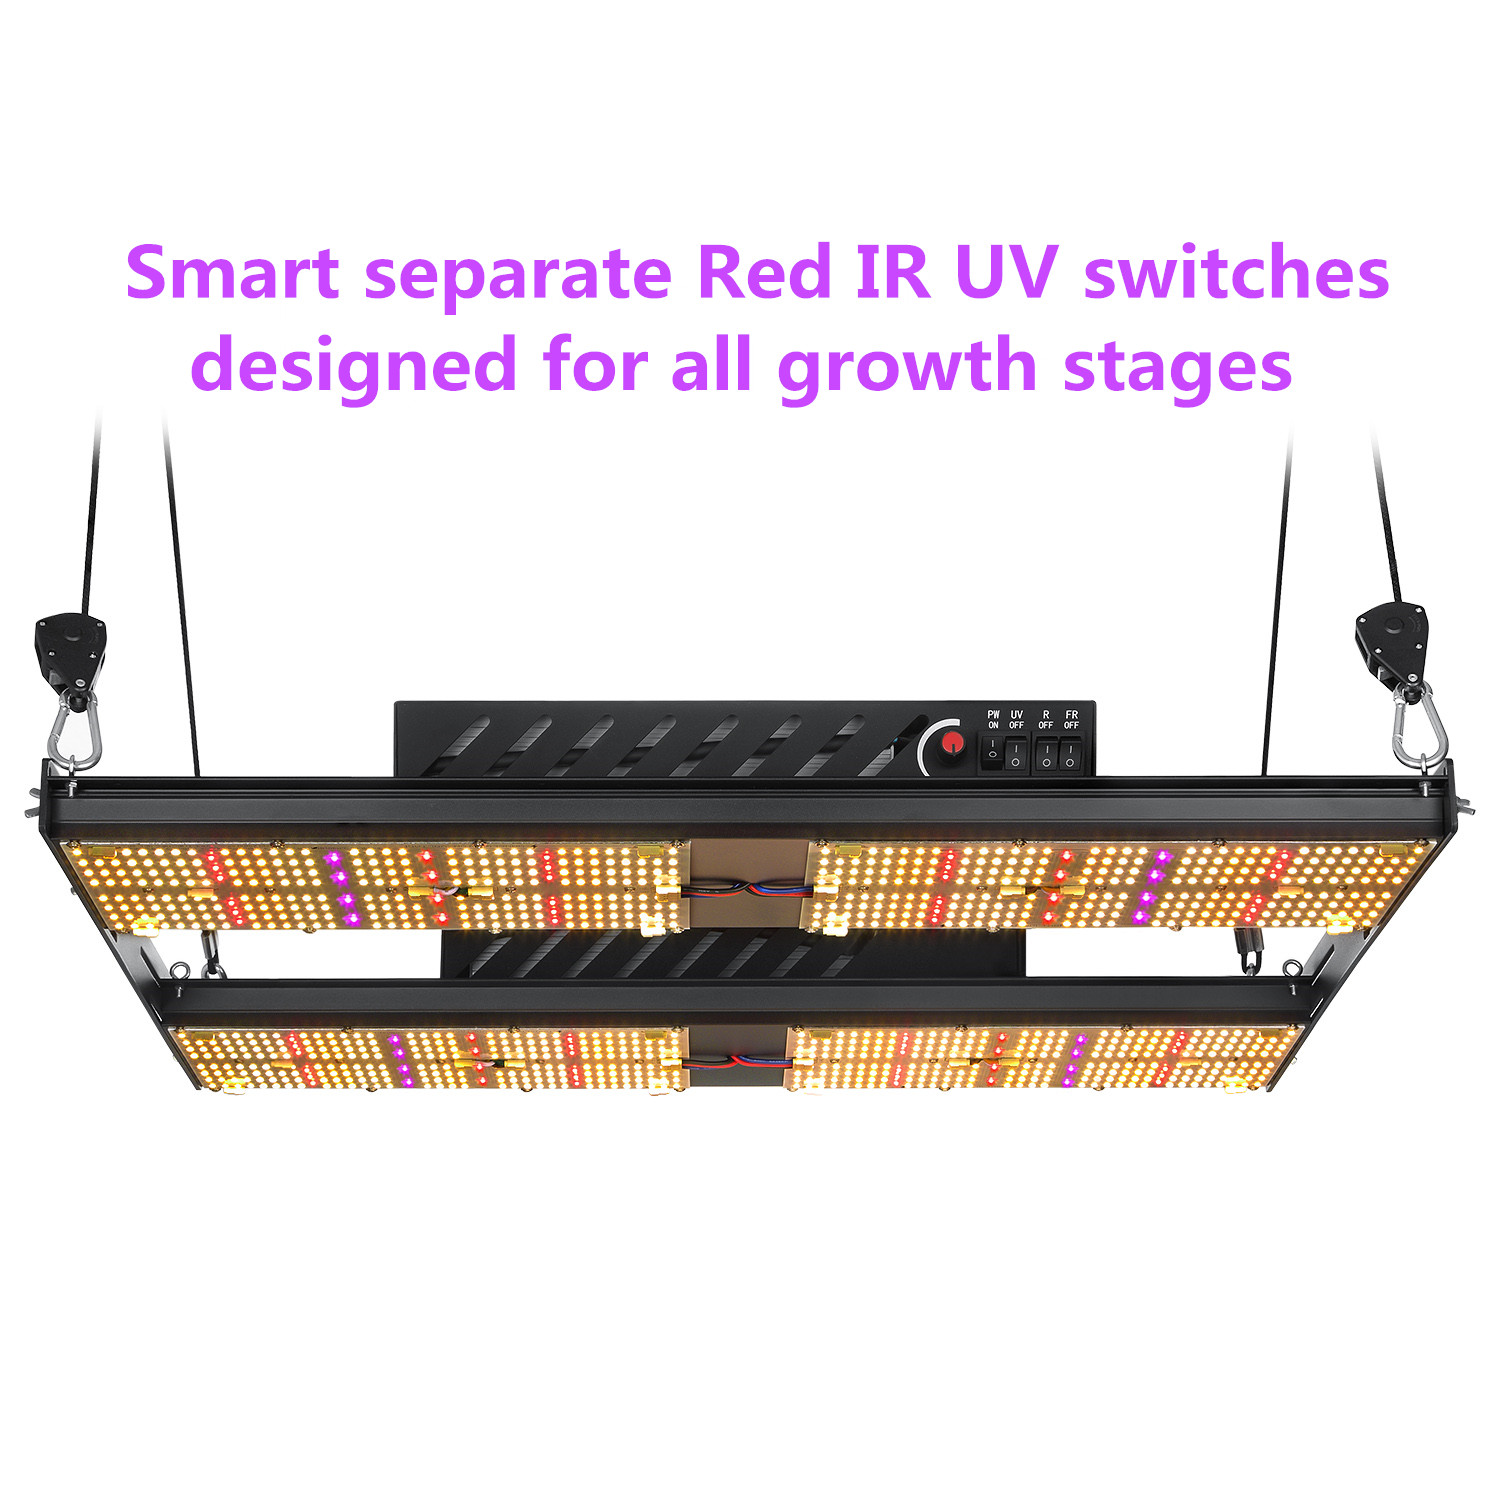 2019 updated Samsung quantum lm301b mix oslon red far red uv 390nm full spectrum indoor led grow lights for seeding to Flowering